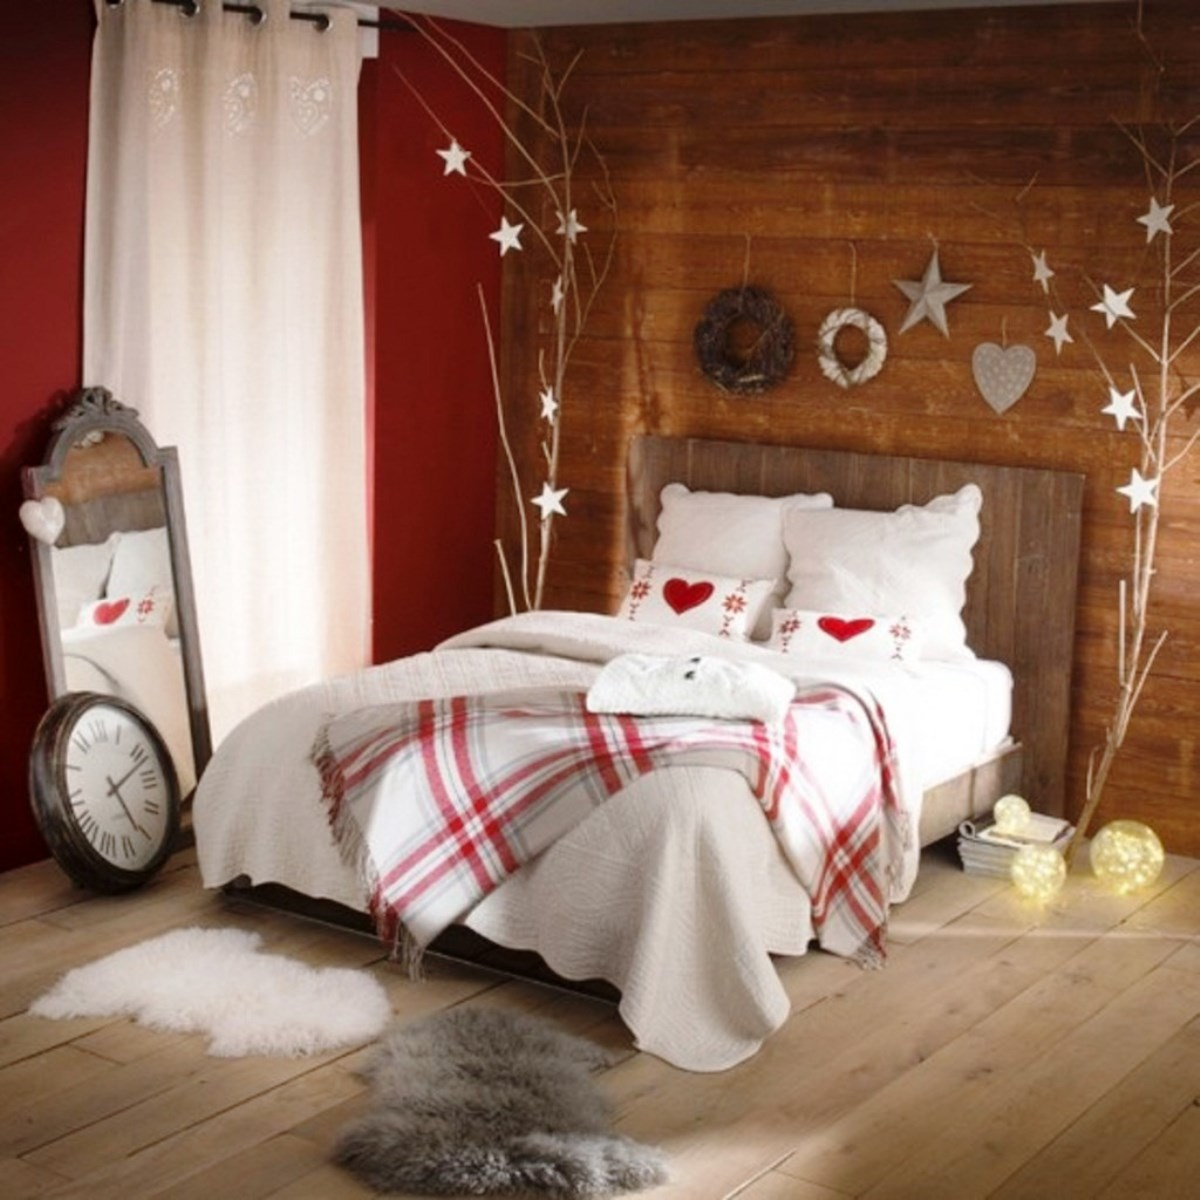 Christmas Bedroom Decor Ideas Part 13